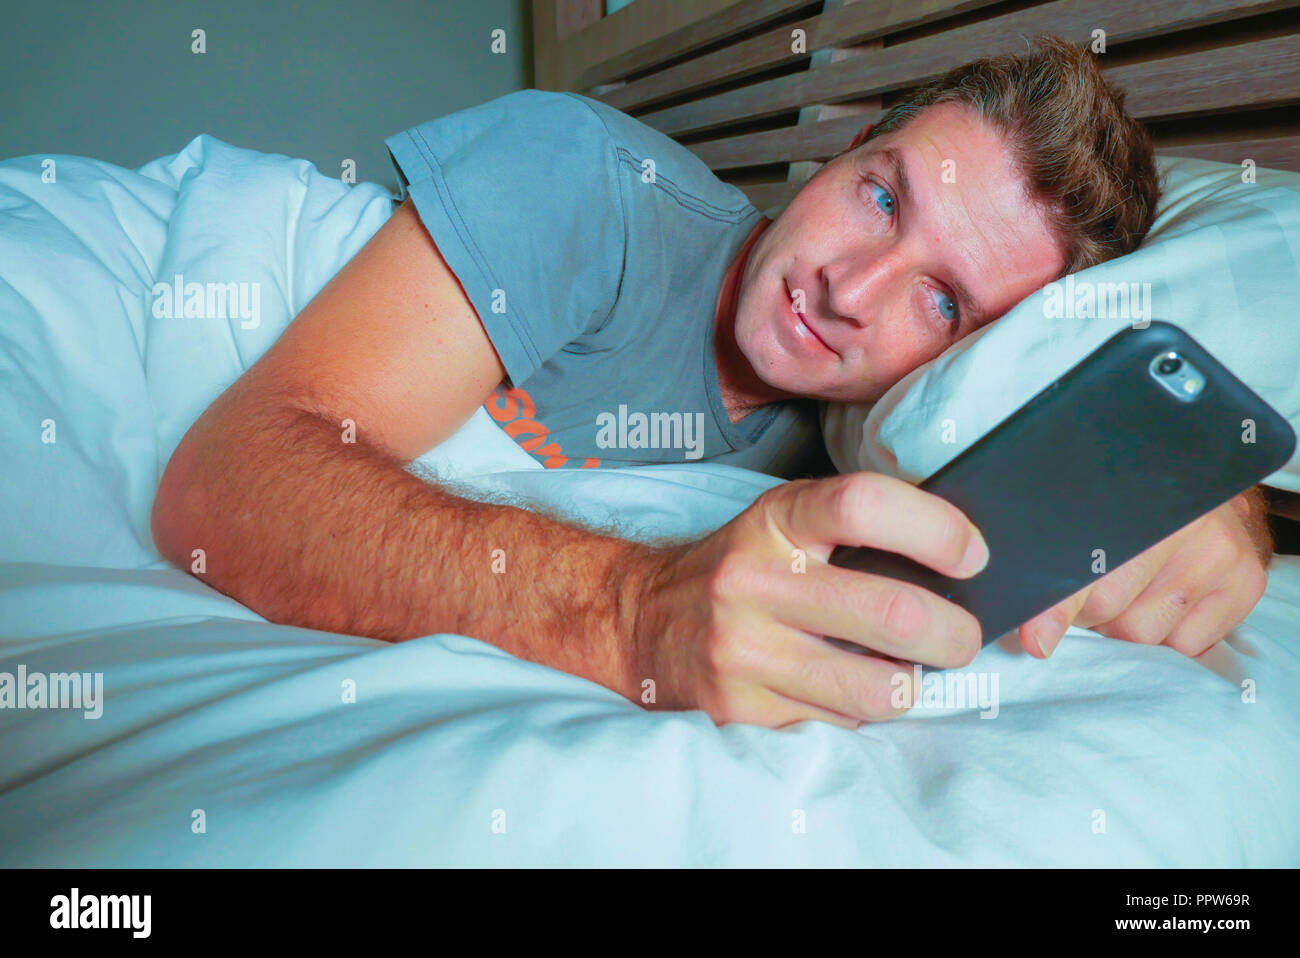 young attractive man smiling happy lying on bed at night using social media app on mobile phone texting or having video call in communication lifestyl - Stock Image